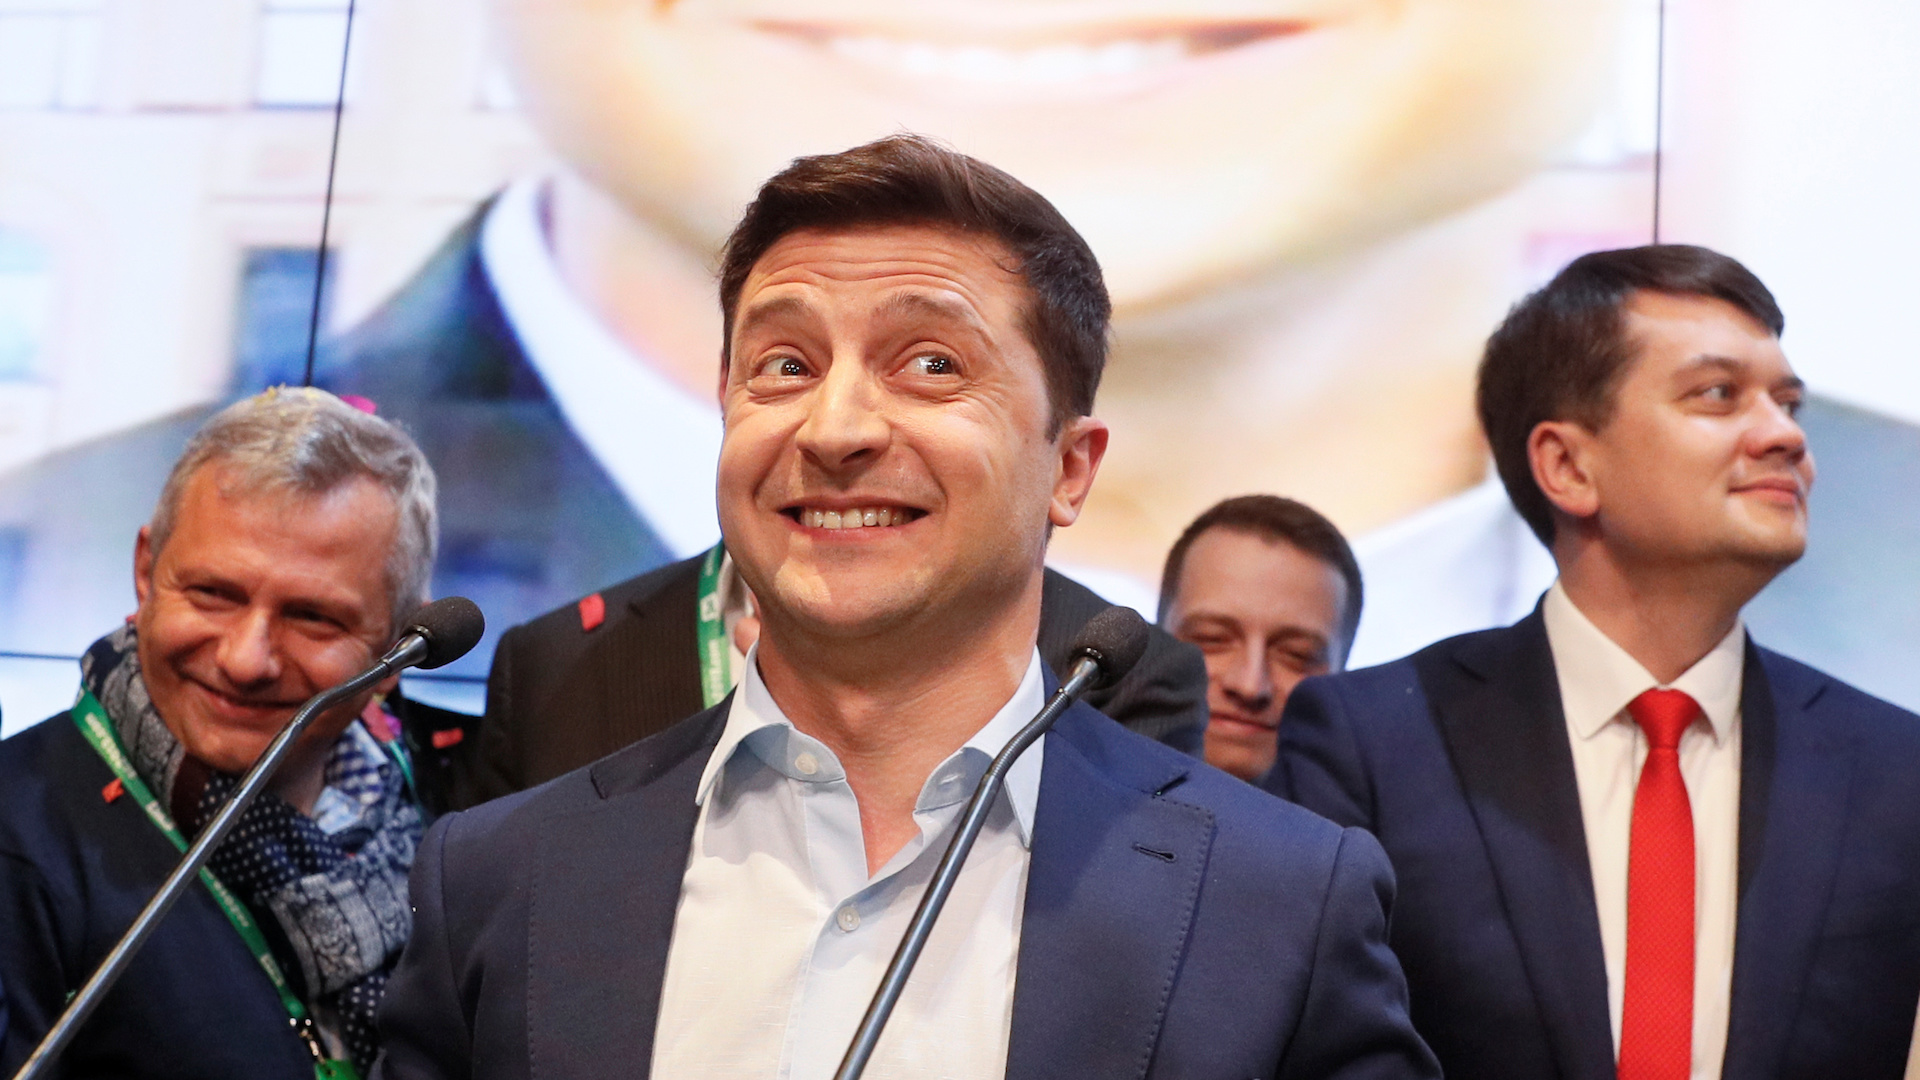 After winning Ukraine's presidency, actor who played the part on TV faces reality